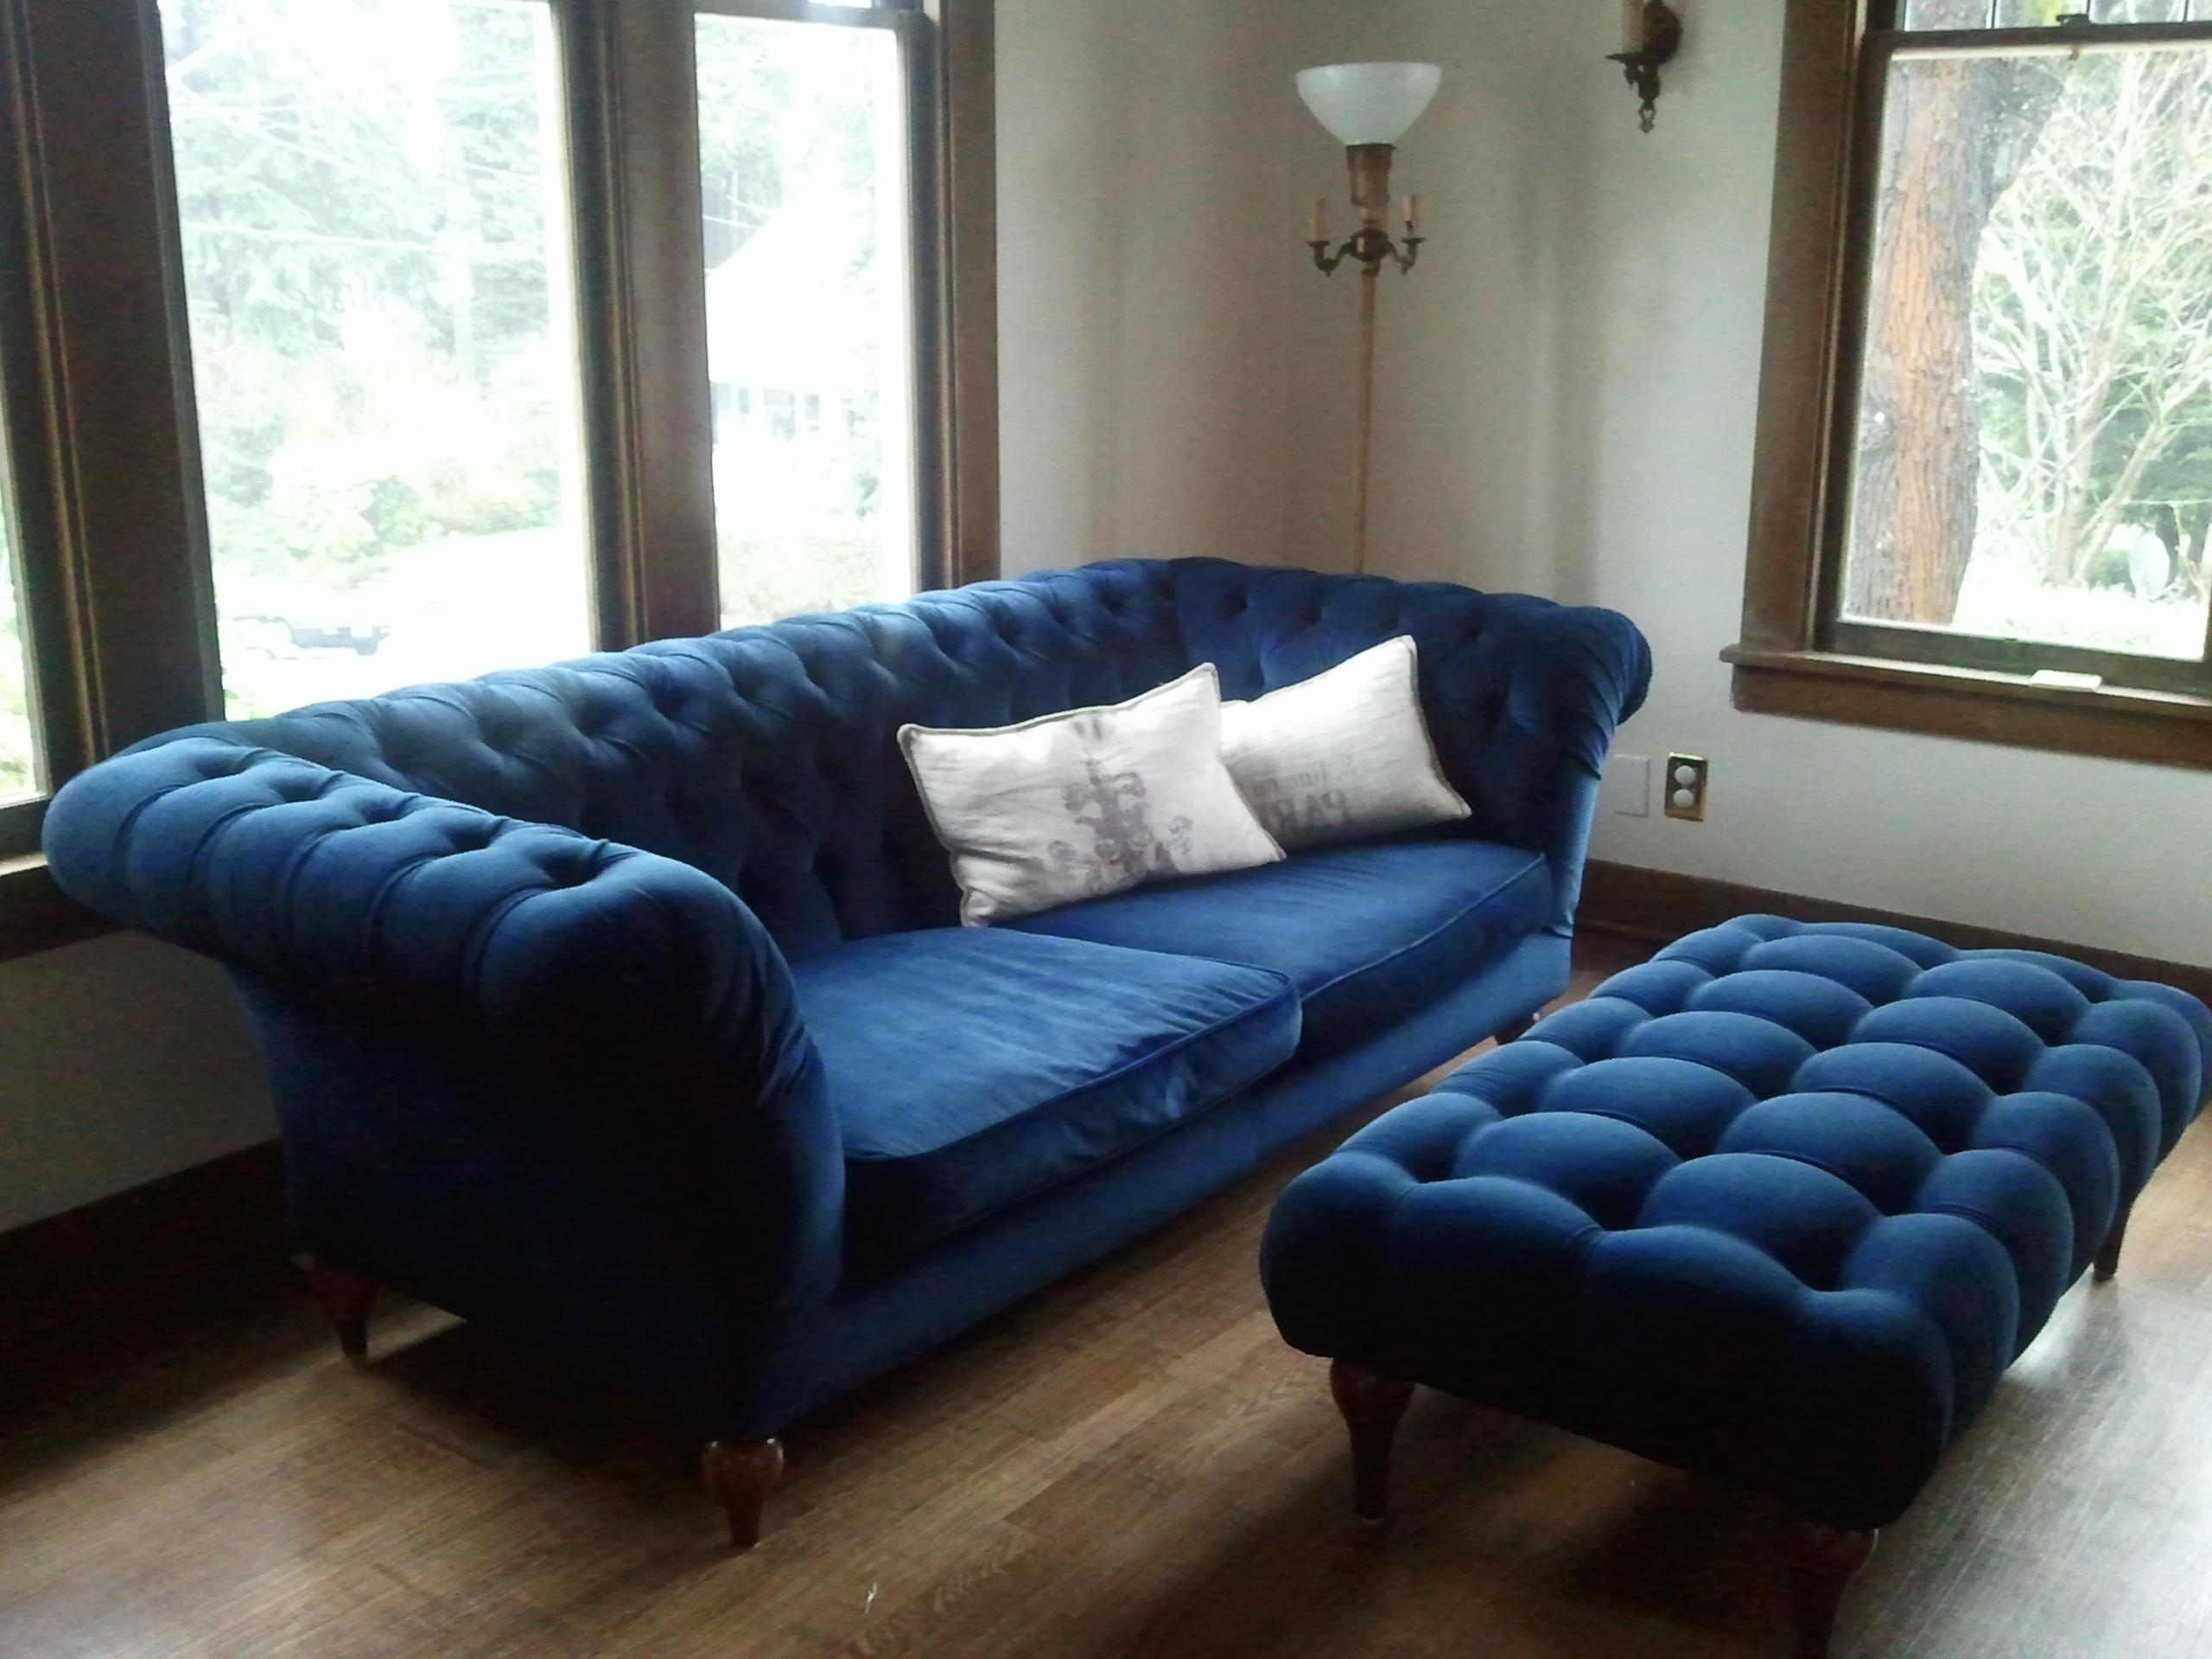 Sectional Sofas At Craigslist Regarding 2017 Furniture : Amazing Craigslist Mcallen Furniture New Sectional (View 5 of 15)